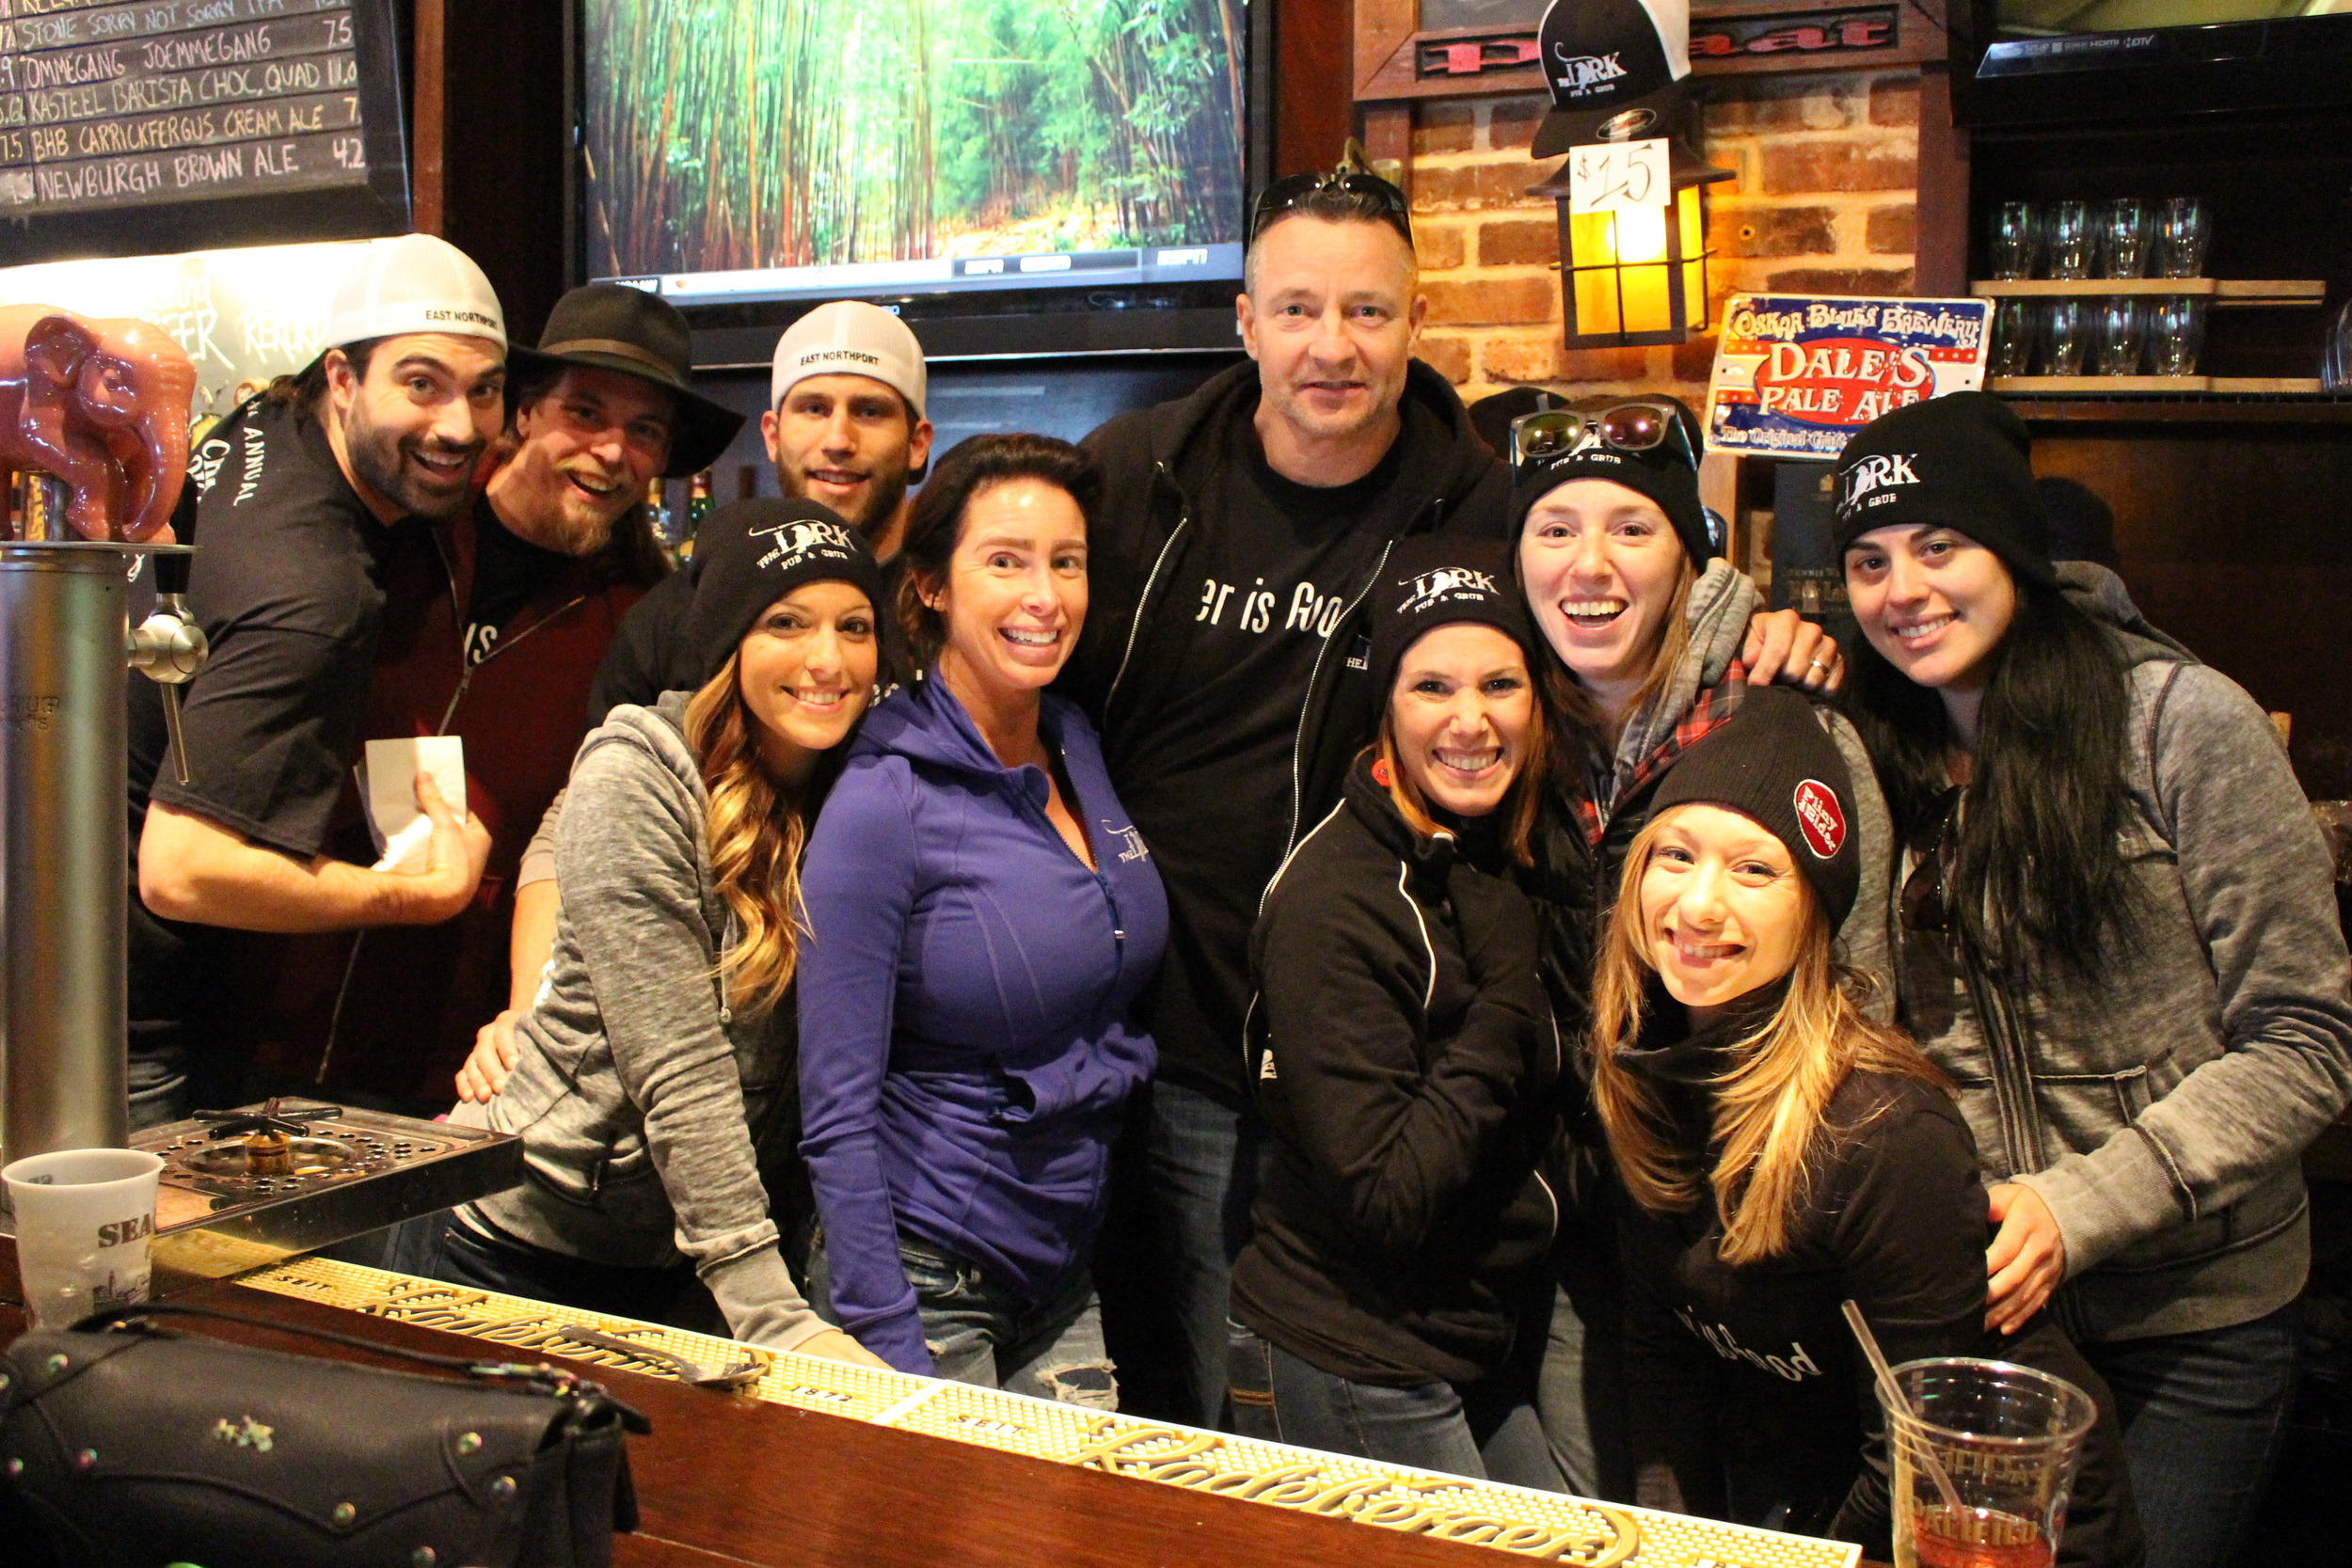 The Lark Pub & Grub staff members are all smiles during the pub's fourth annual chili cook-off on Sunday, which raised over $4,000 for The League for Animal Protection of Huntington.